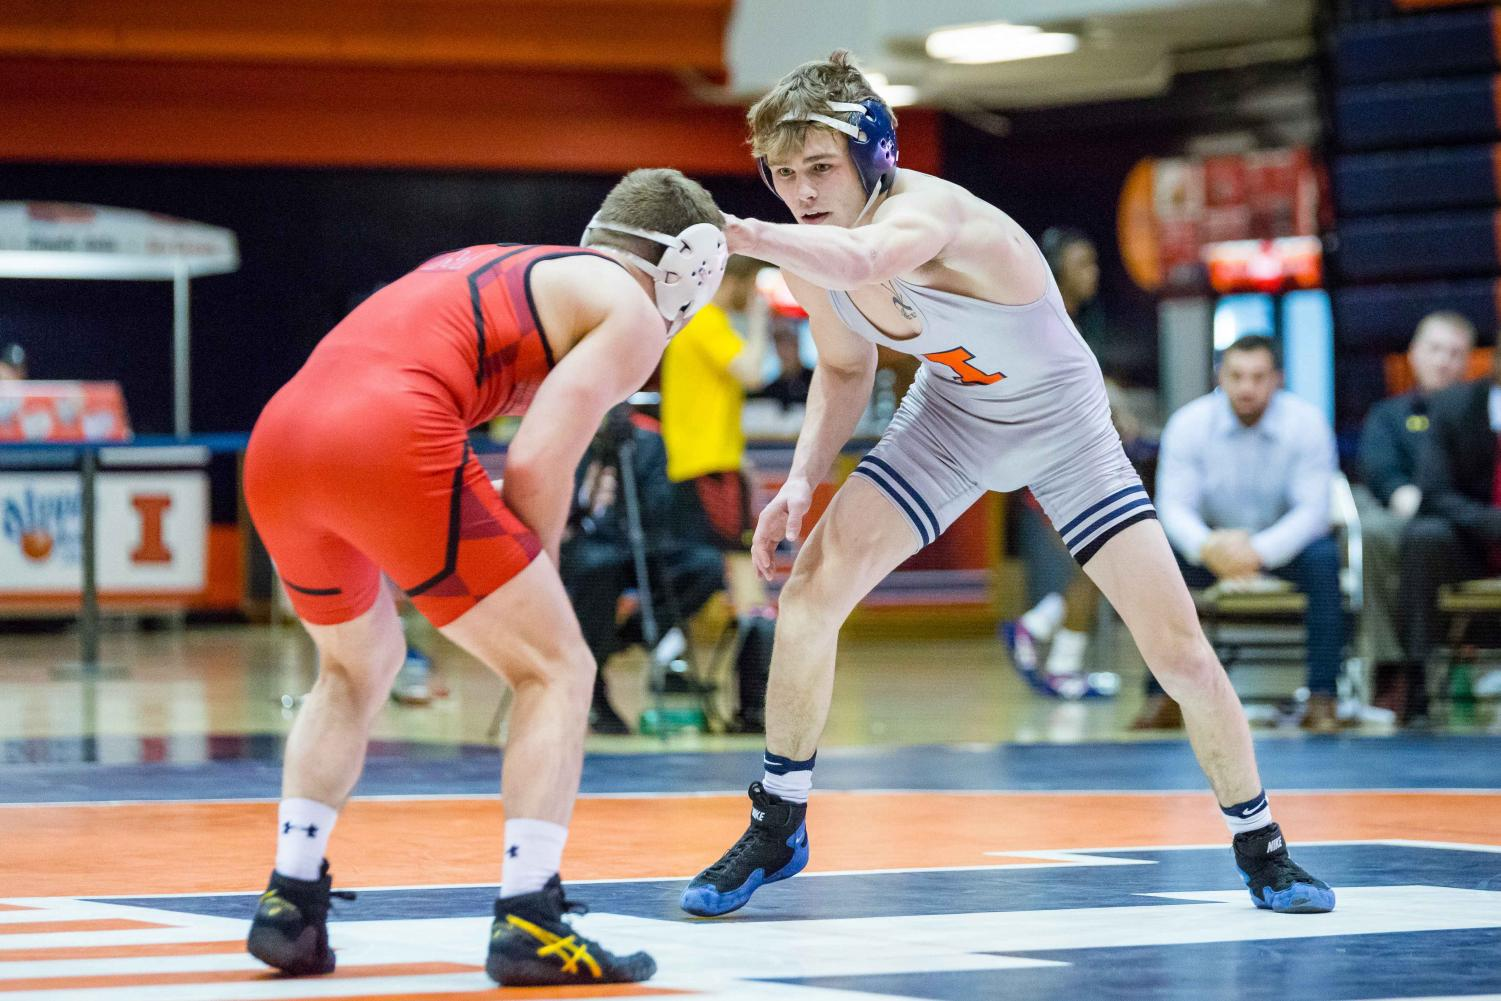 Illinois' Travis Piotrowski wrestles with Maryland's Brandon Cray in the 125 pound weight class during the meet at Huff Hall on Sunday, Jan. 28, 2018. The Illini won 25-18.